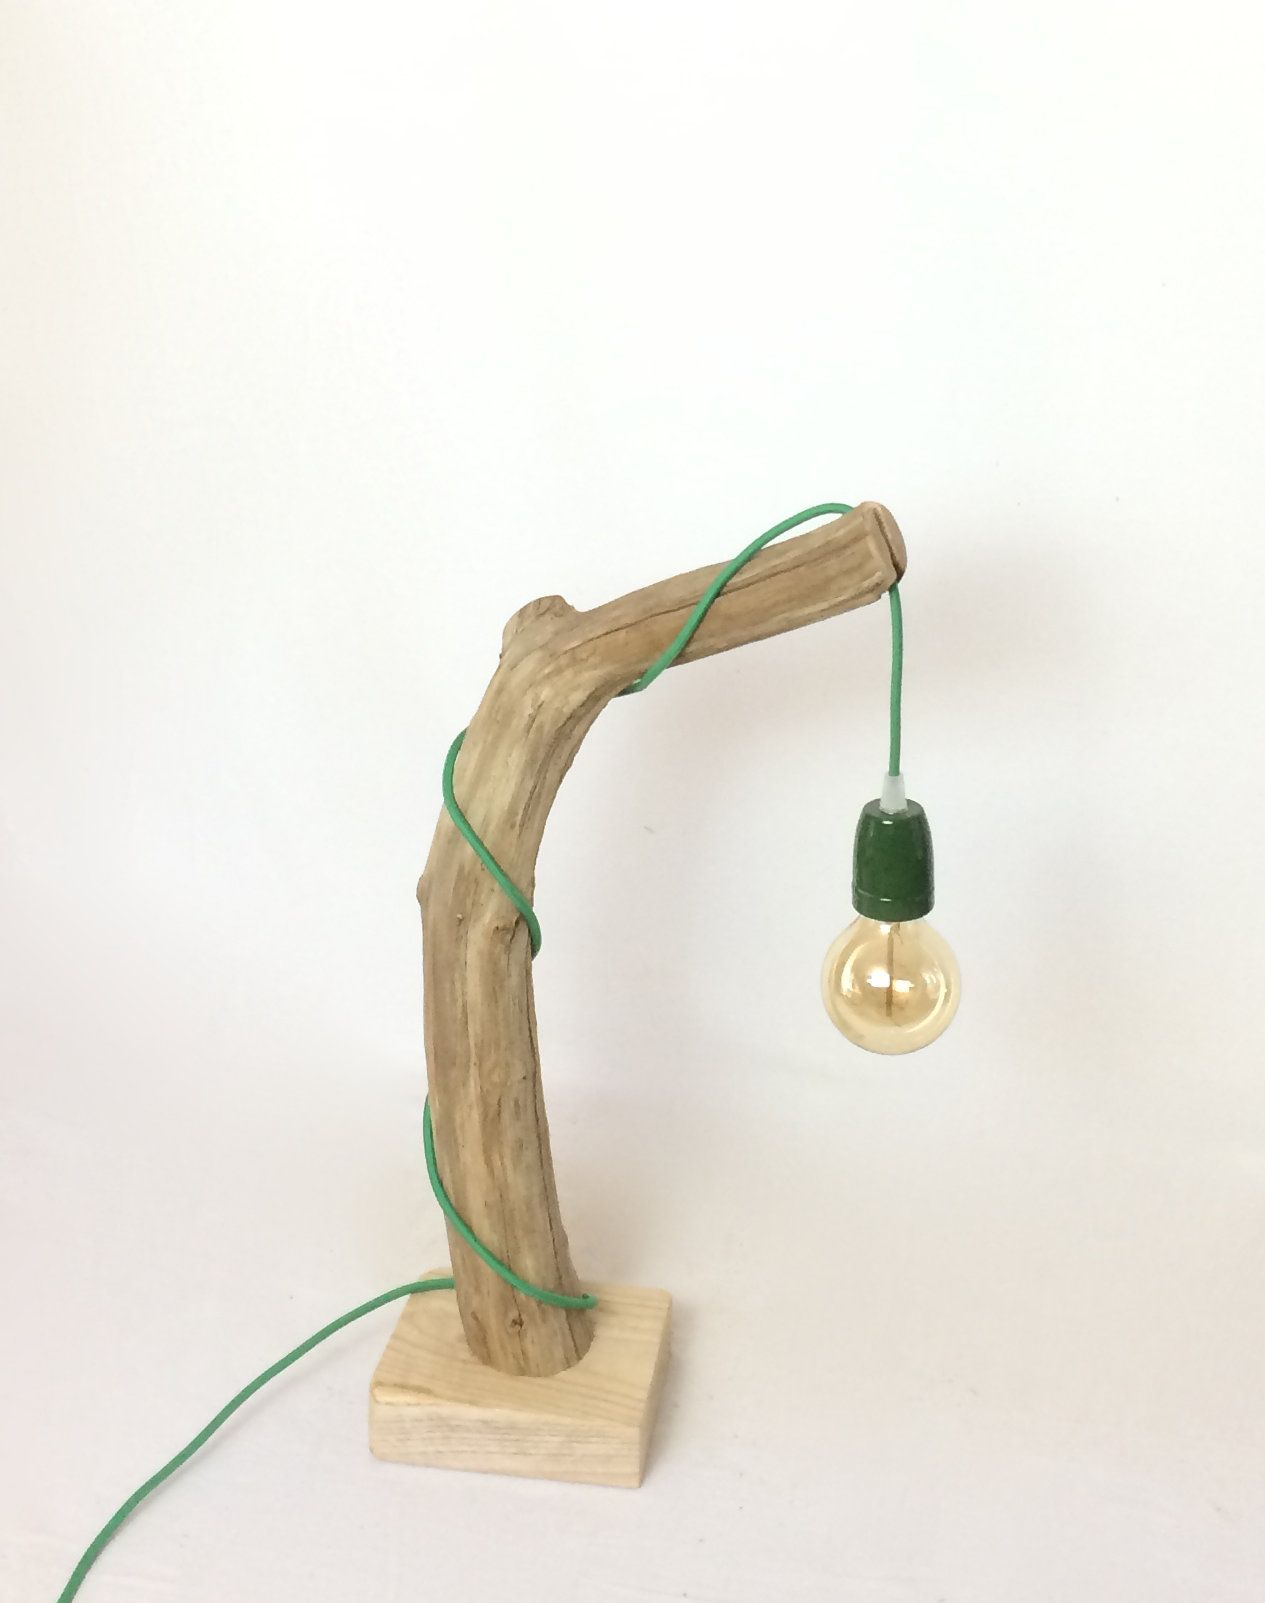 Lampe En Bois Lampe Bois Flotté Lights Ideas Pinterest Wooden Lamp